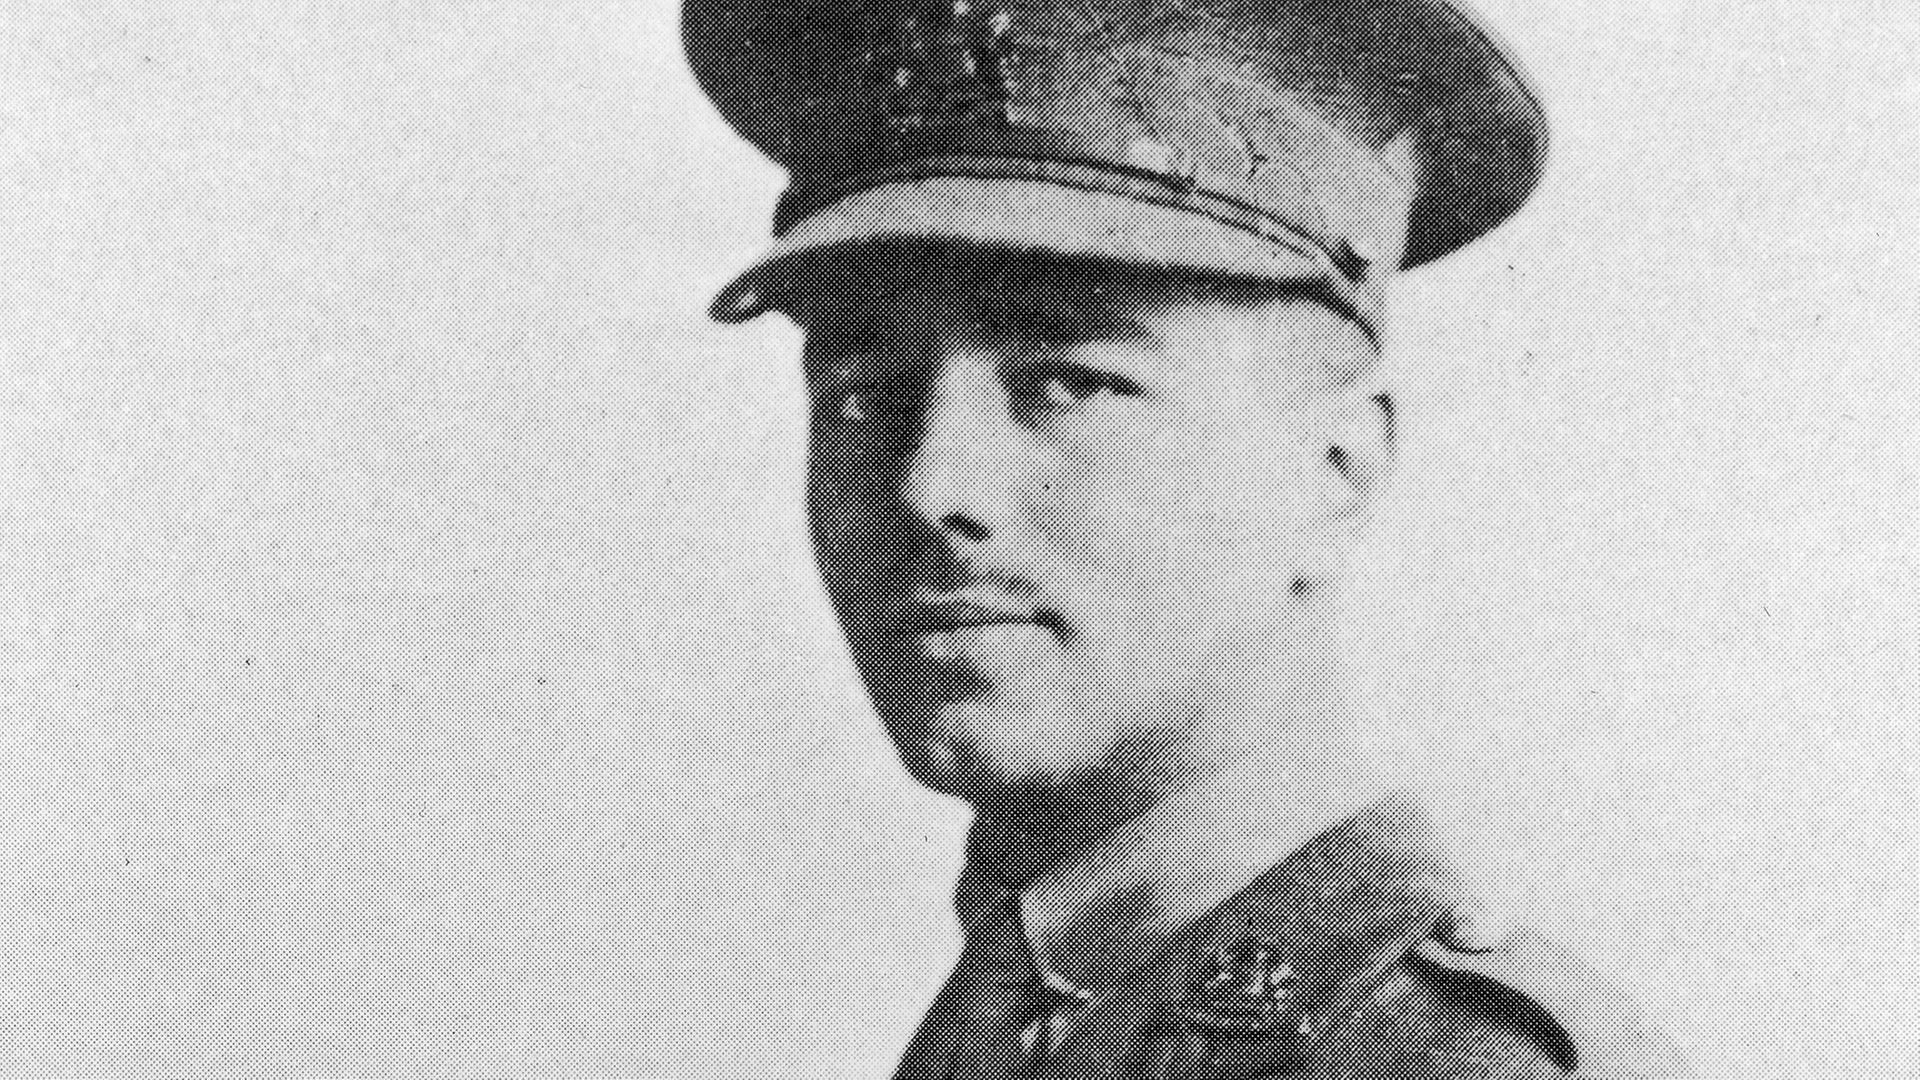 Portrait of Wilfred Owen, circa 1916. - Credit: Getty Images